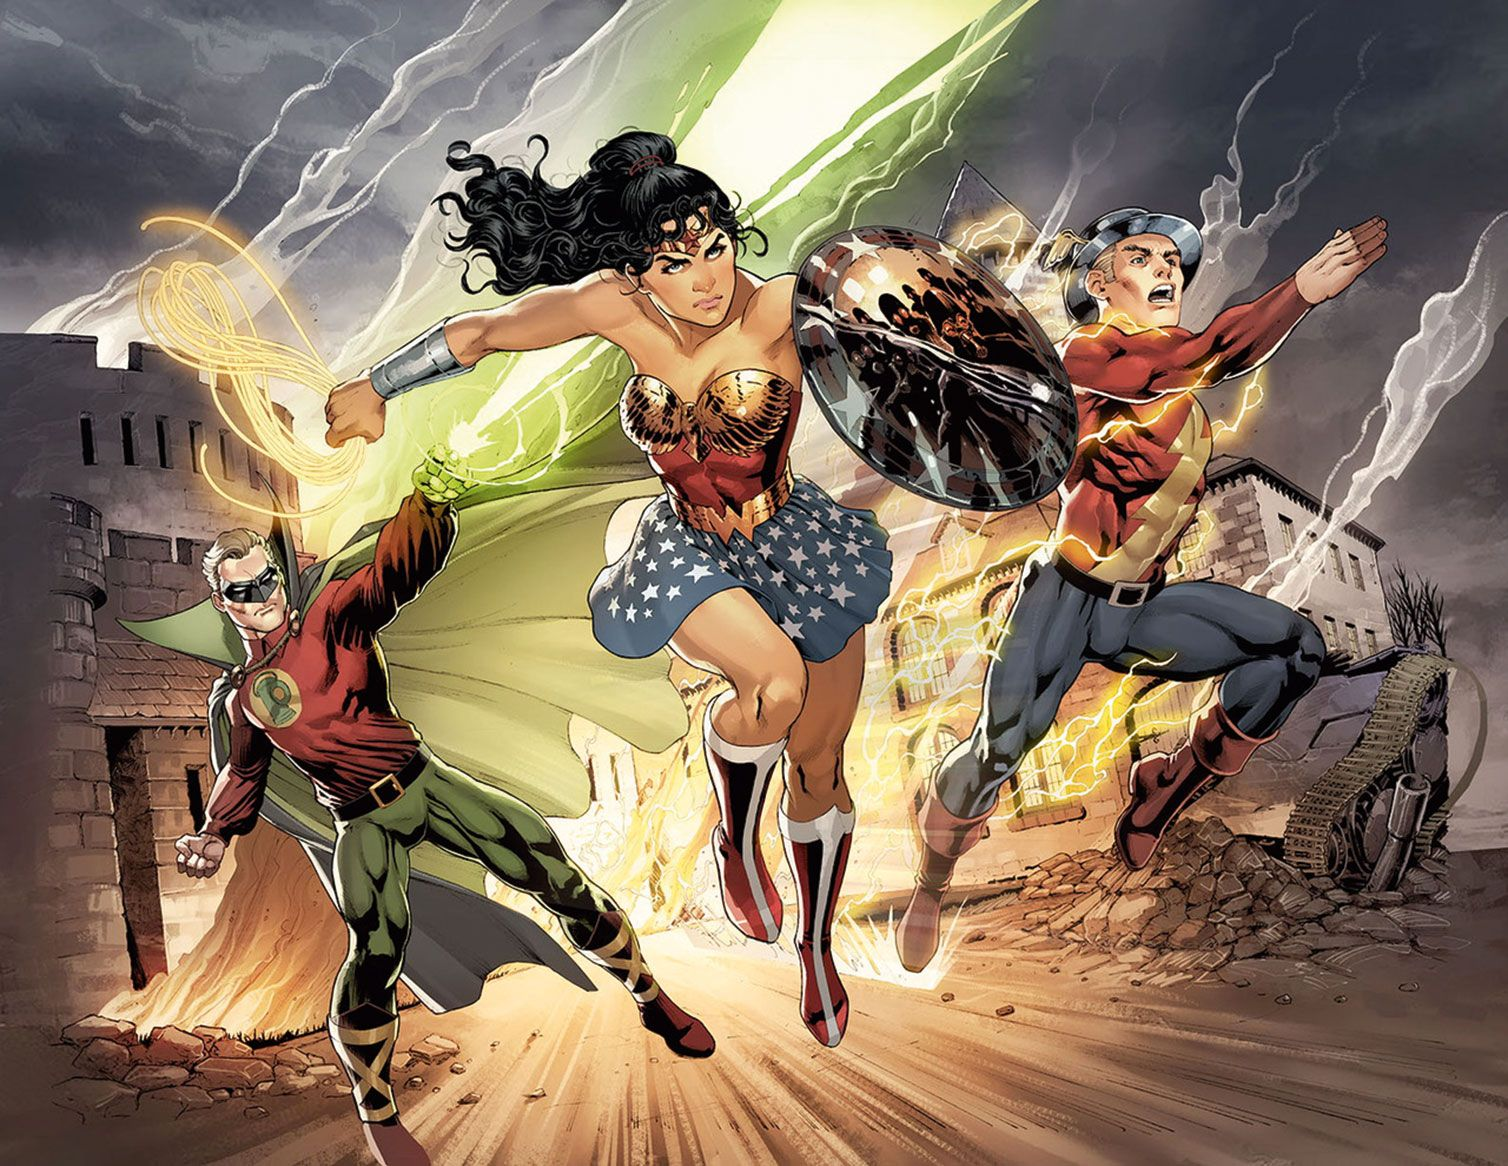 200 Justice Society The Golden Age Heroes Ideas In 2021 Justice Society Of America Dc Comics Comics